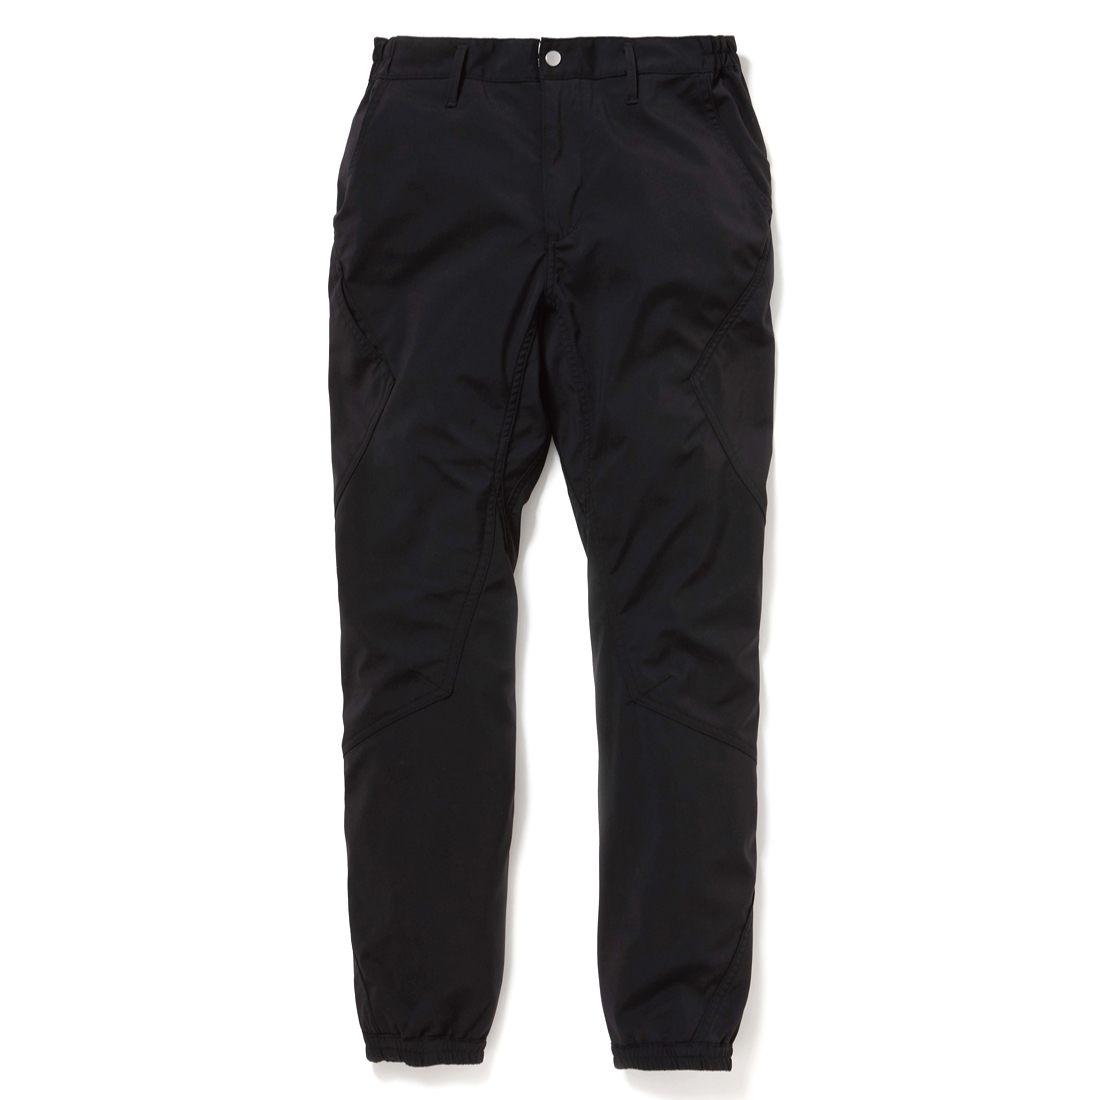 nonnative / CYCLIST EASY RIB PANTS TAPERED FIT N/P TAFFETA STRETCH WITH WINDSTOPPER 3L -BLACK